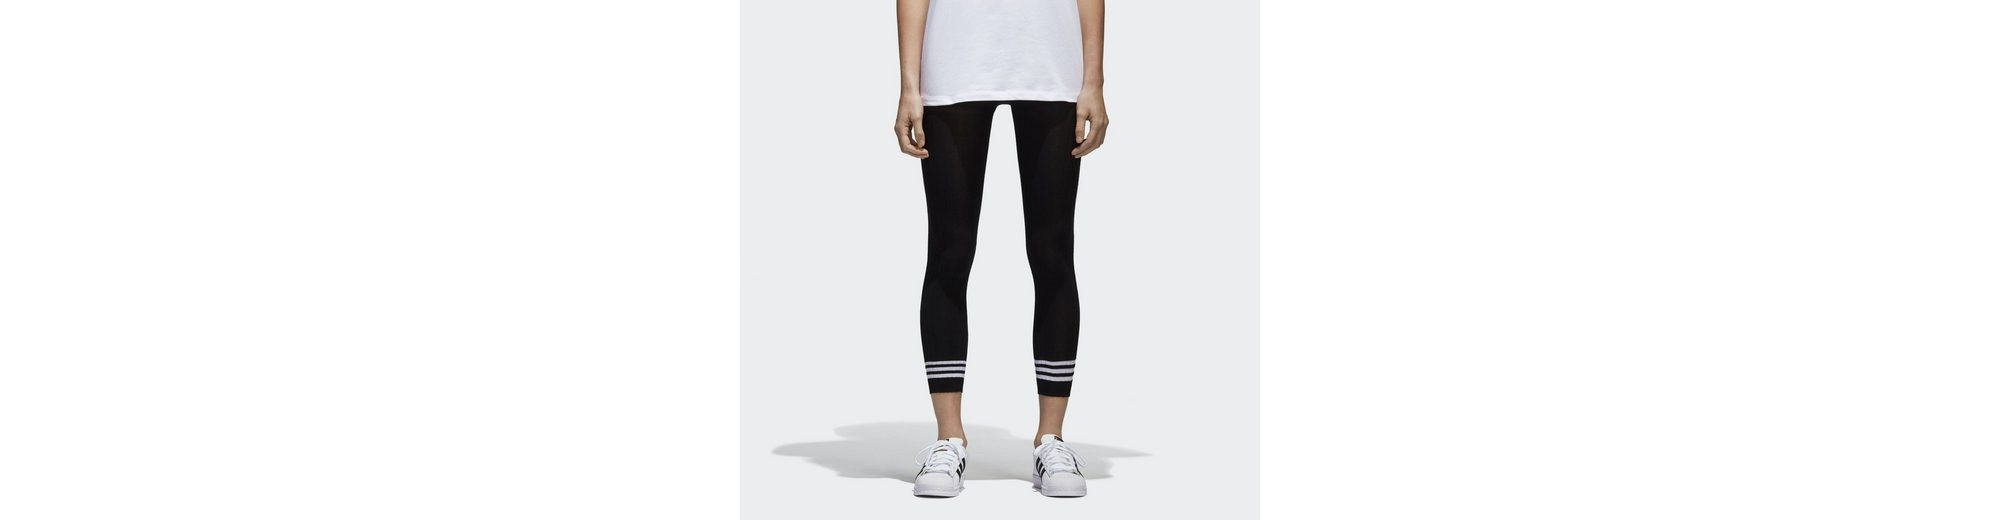 adidas Leggings Originals Leggings Leggings Streifen Originals 3 adidas 3 Streifen nxxr6wPS